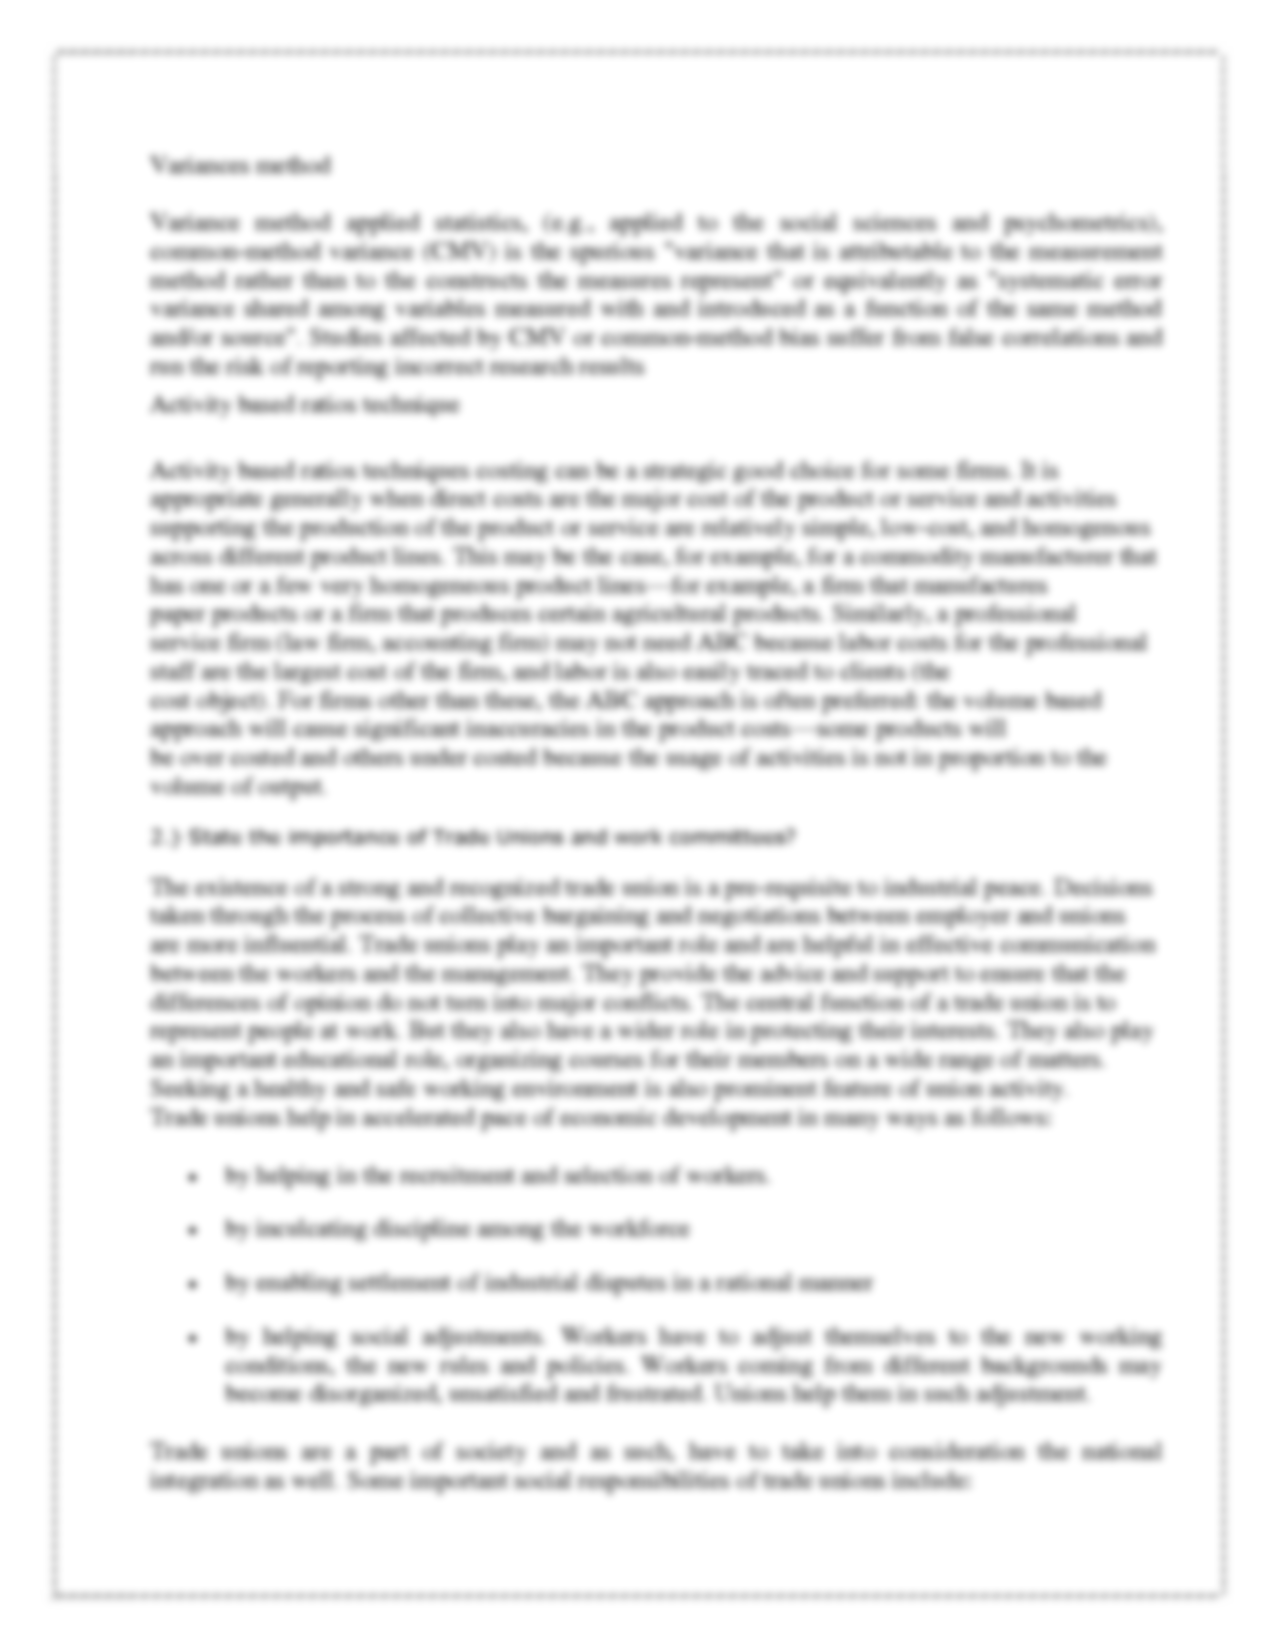 case study on diabetes management Diabetes and depression case studies (ottawa: cihi, 2008) cette publication   health and health care in canada and makes it publicly available canada's.